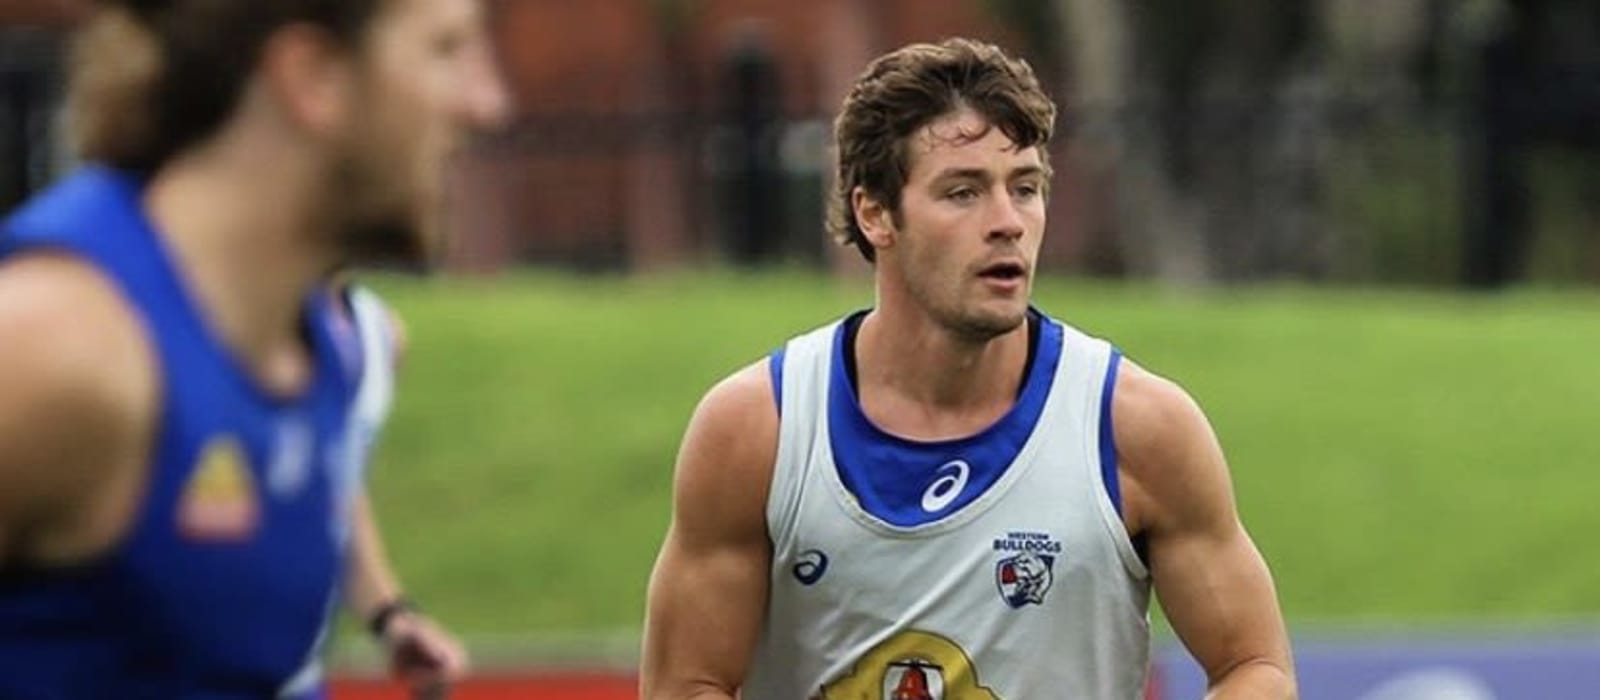 AFL Players support Ladder's online program delivery - Josh Dunkley, Western Bulldogs Football Club